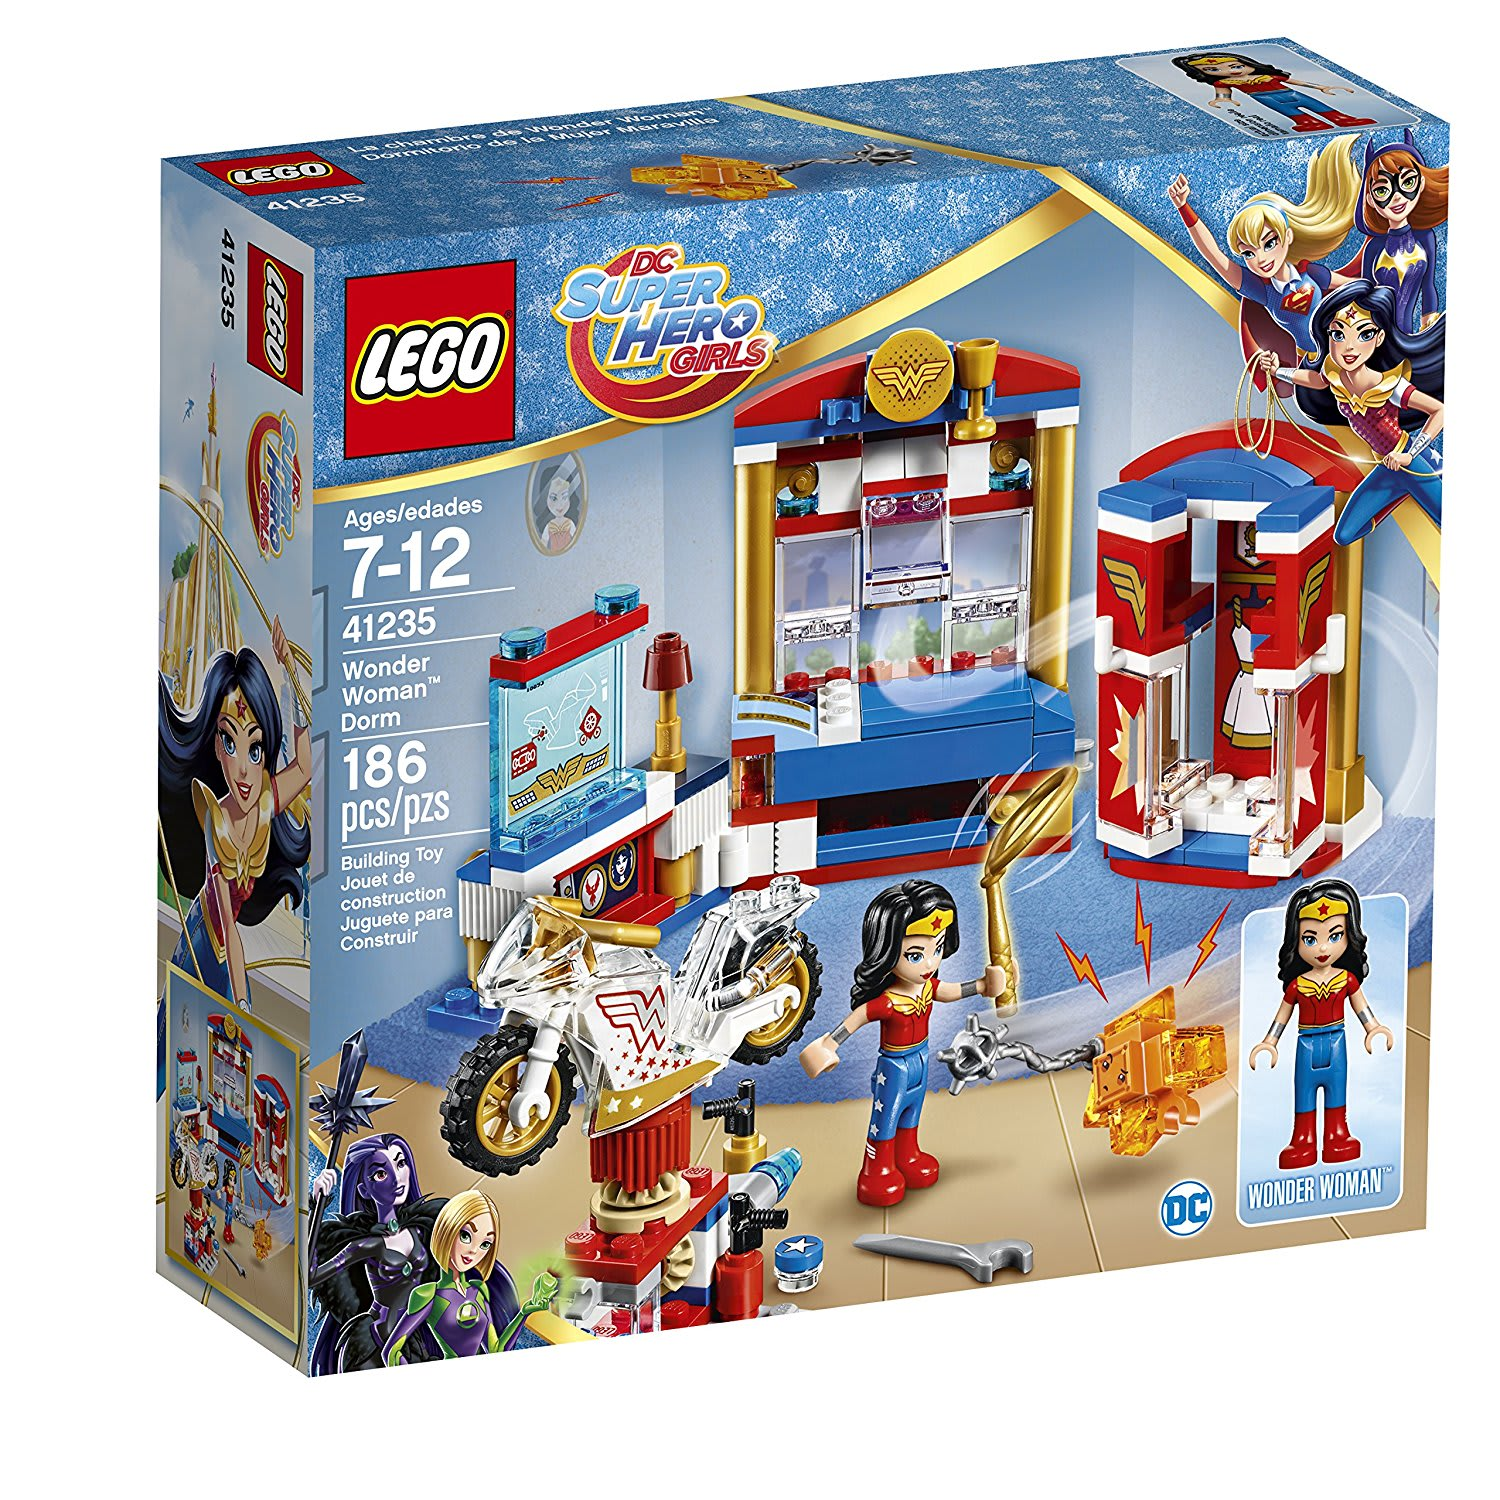 Wonder Woman LEGO set